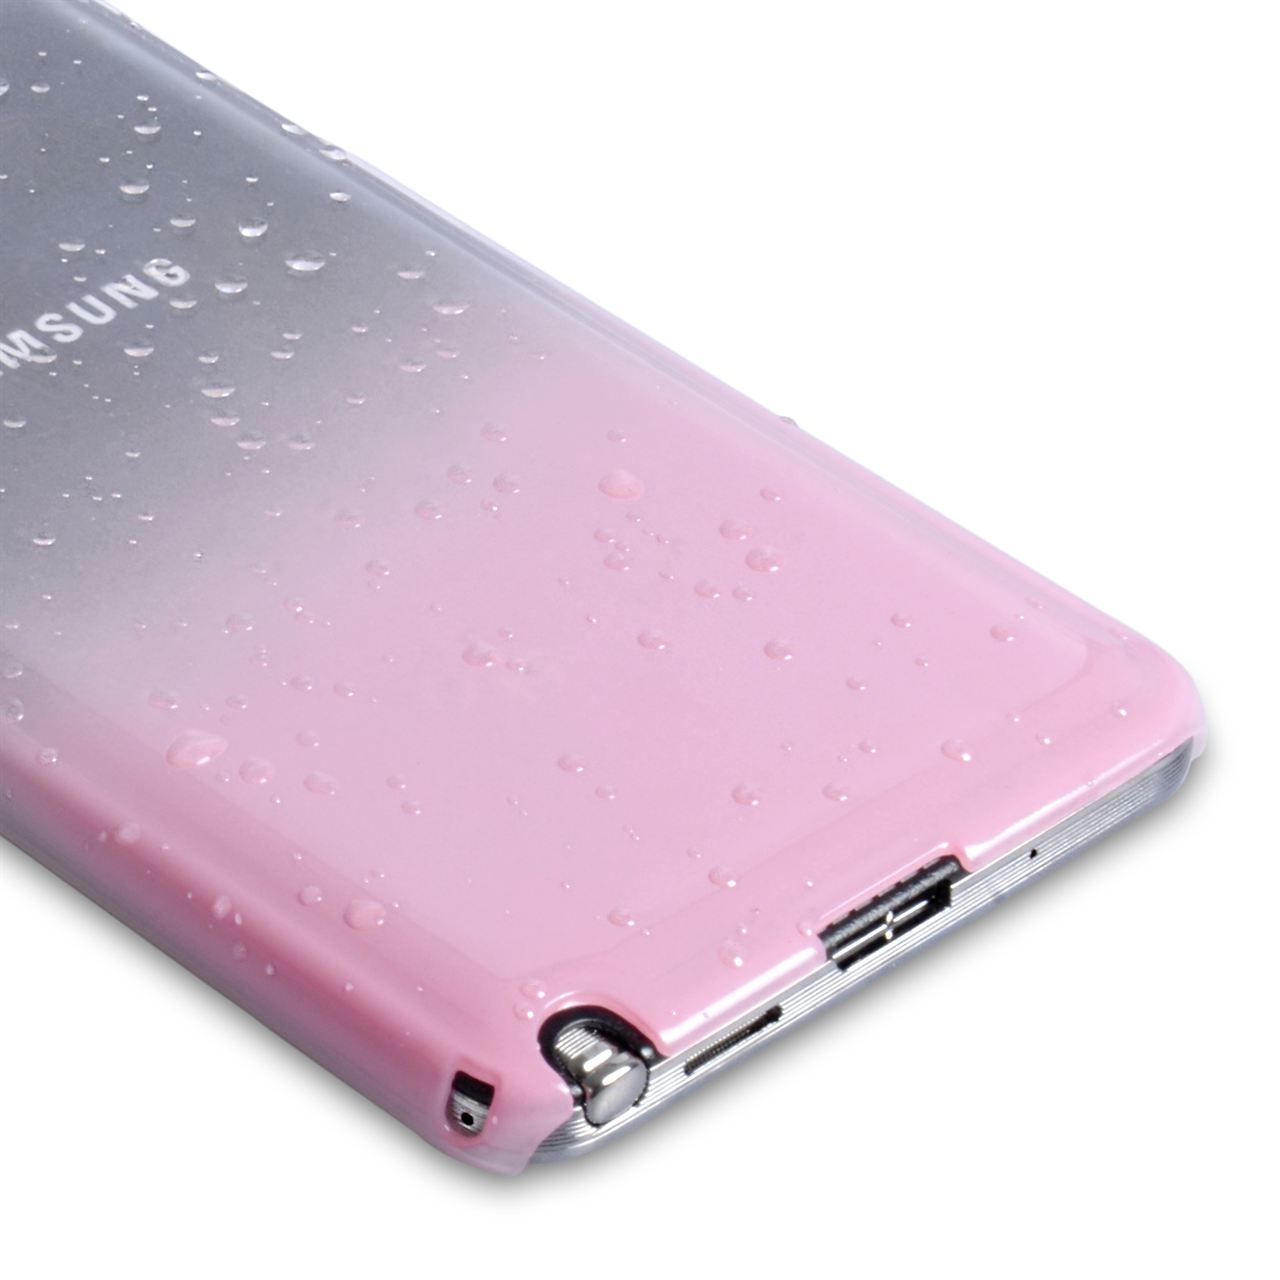 YouSave Samsung Galaxy Note 3 Waterdrop Hard Case - Baby Pink